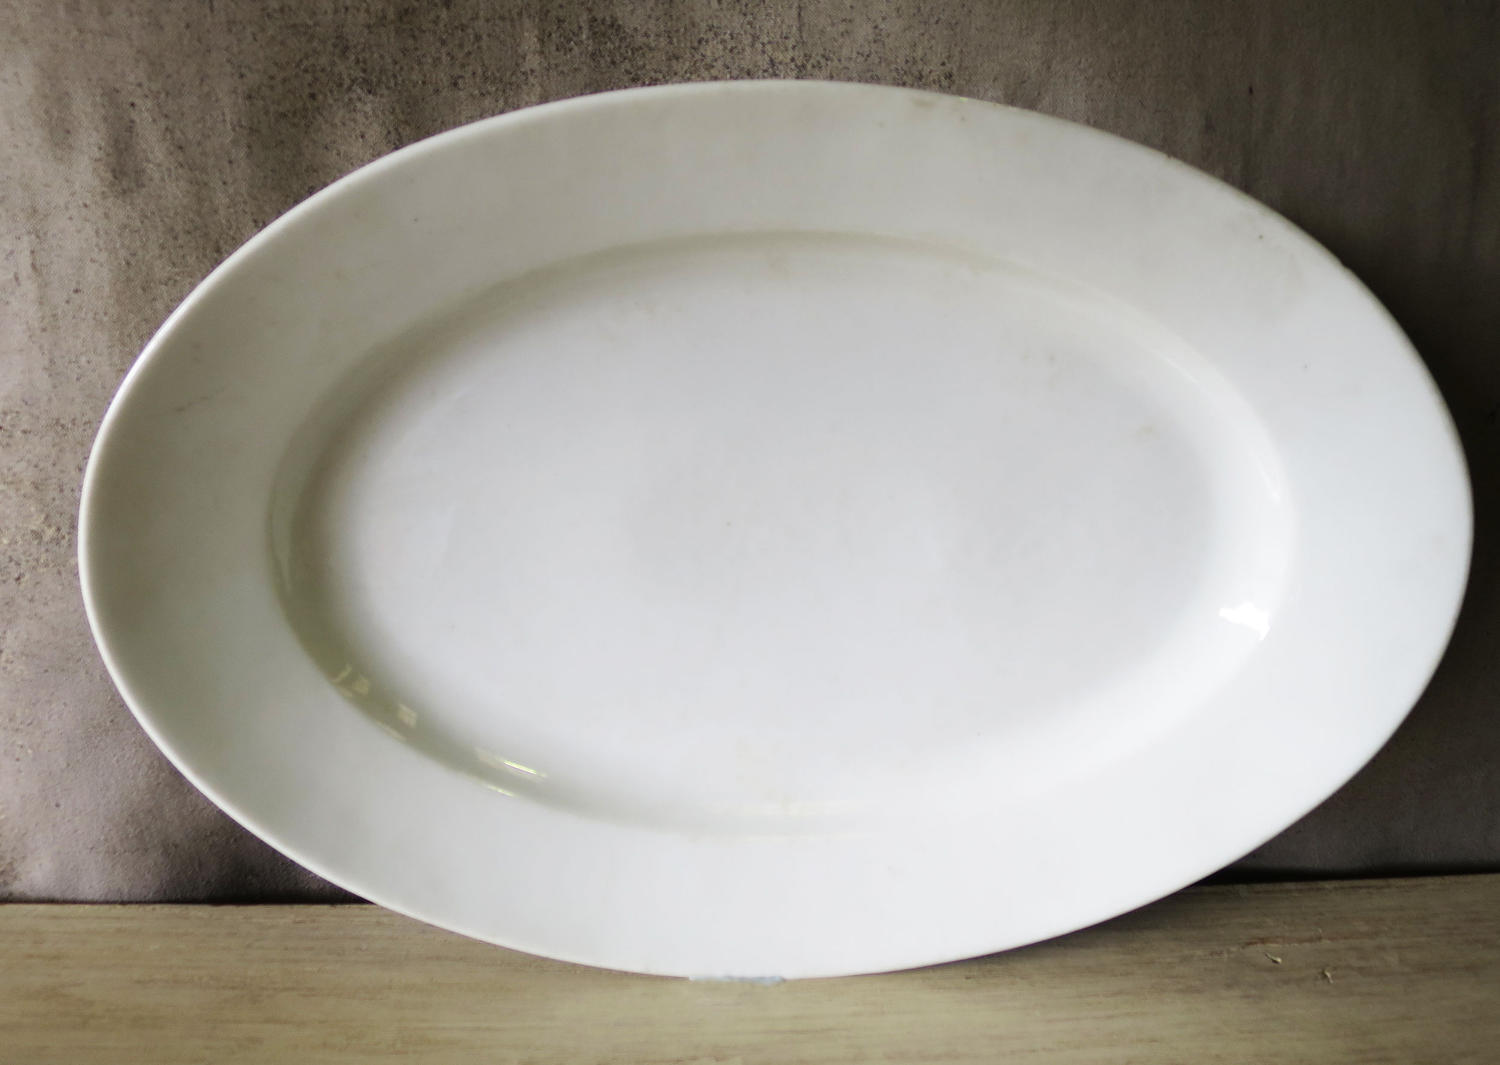 Plain French White Porcelain Meat Server - 1900